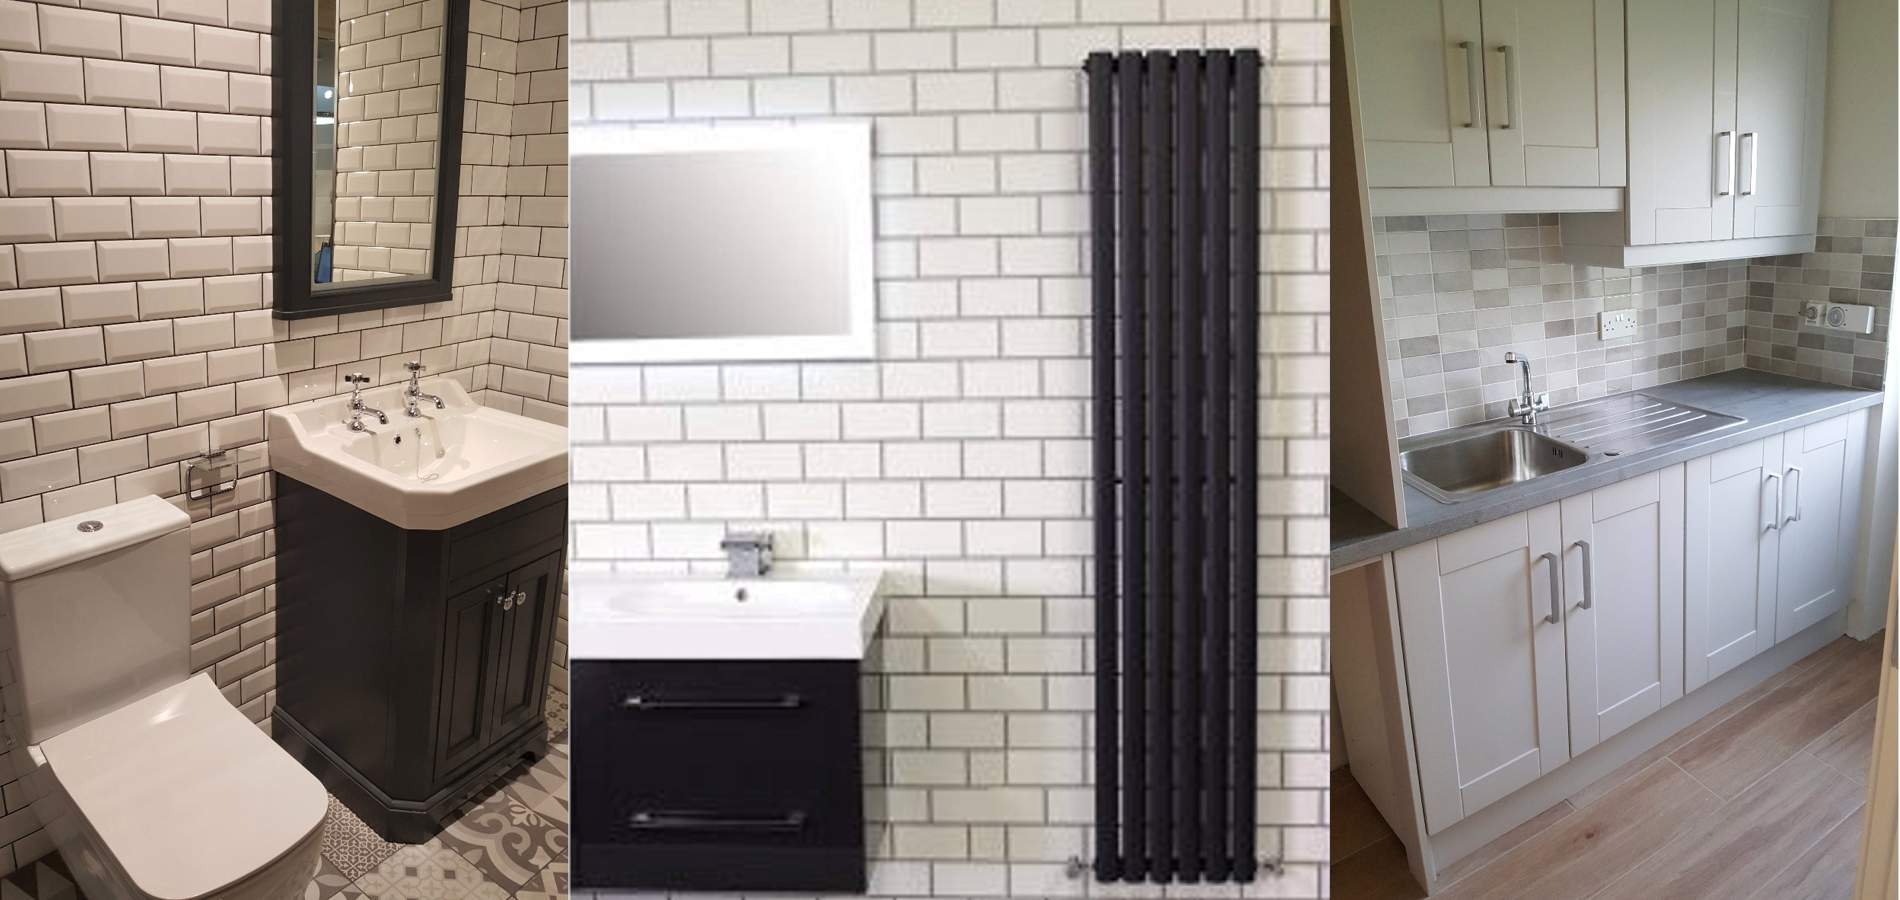 Kitchen & bathroom Wall Tiles by North West Tiles & Timber, Co. Leitrim, Ireland